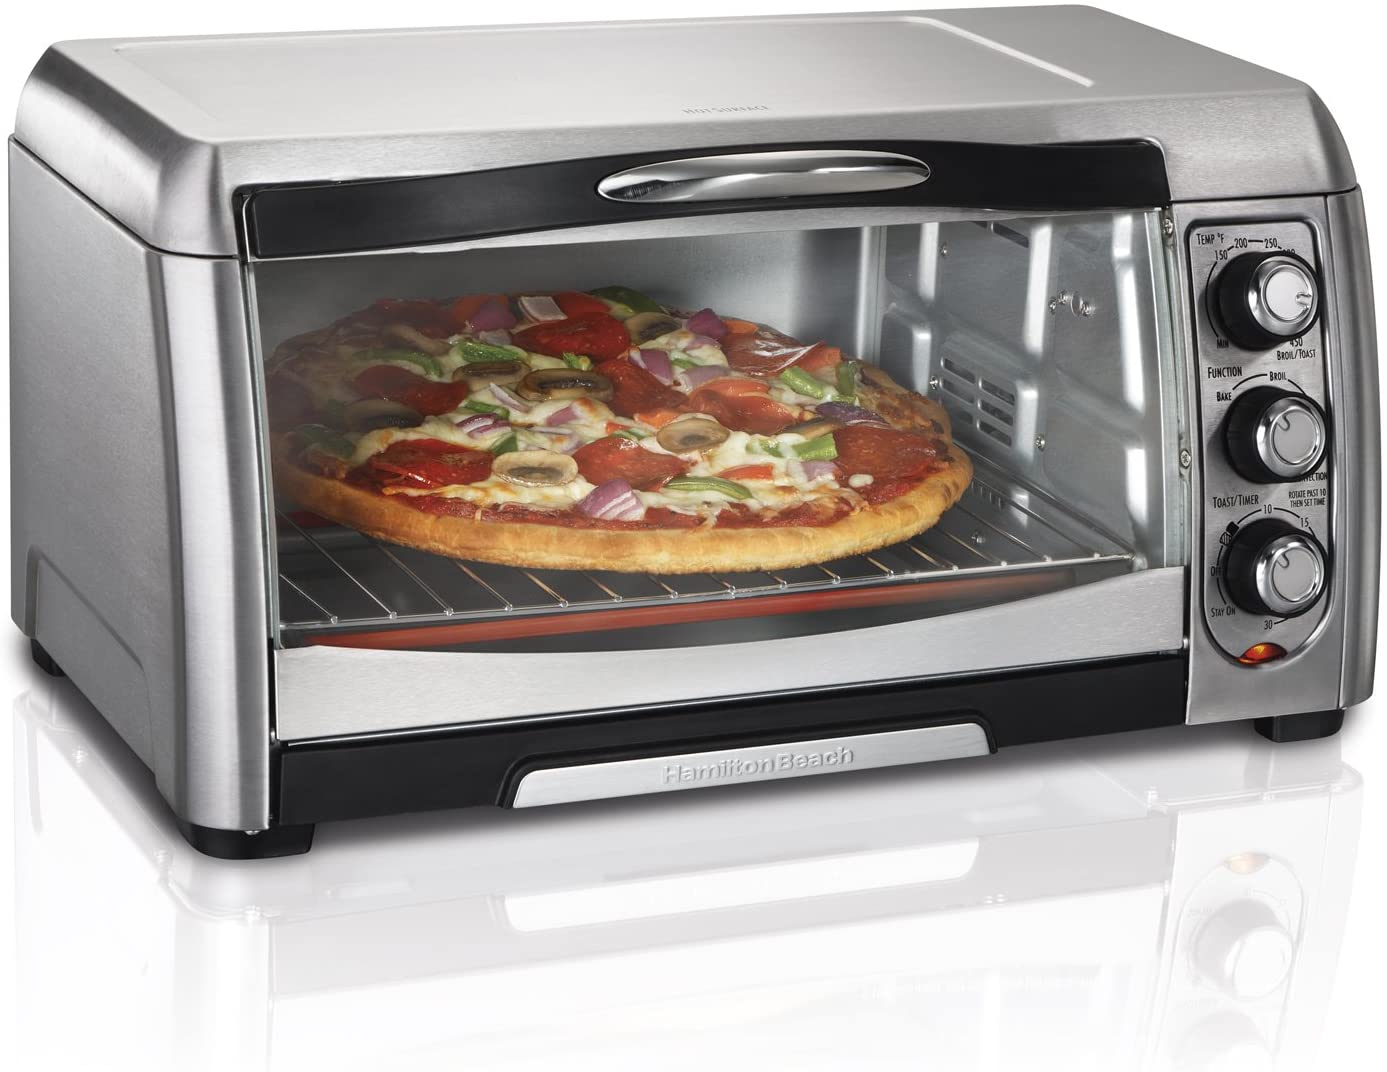 top 10 best toaster ovens 2021 best toaster reviews herstylecode 2 Top 10 Best Toaster Ovens 2021 - Best Toaster Reviews